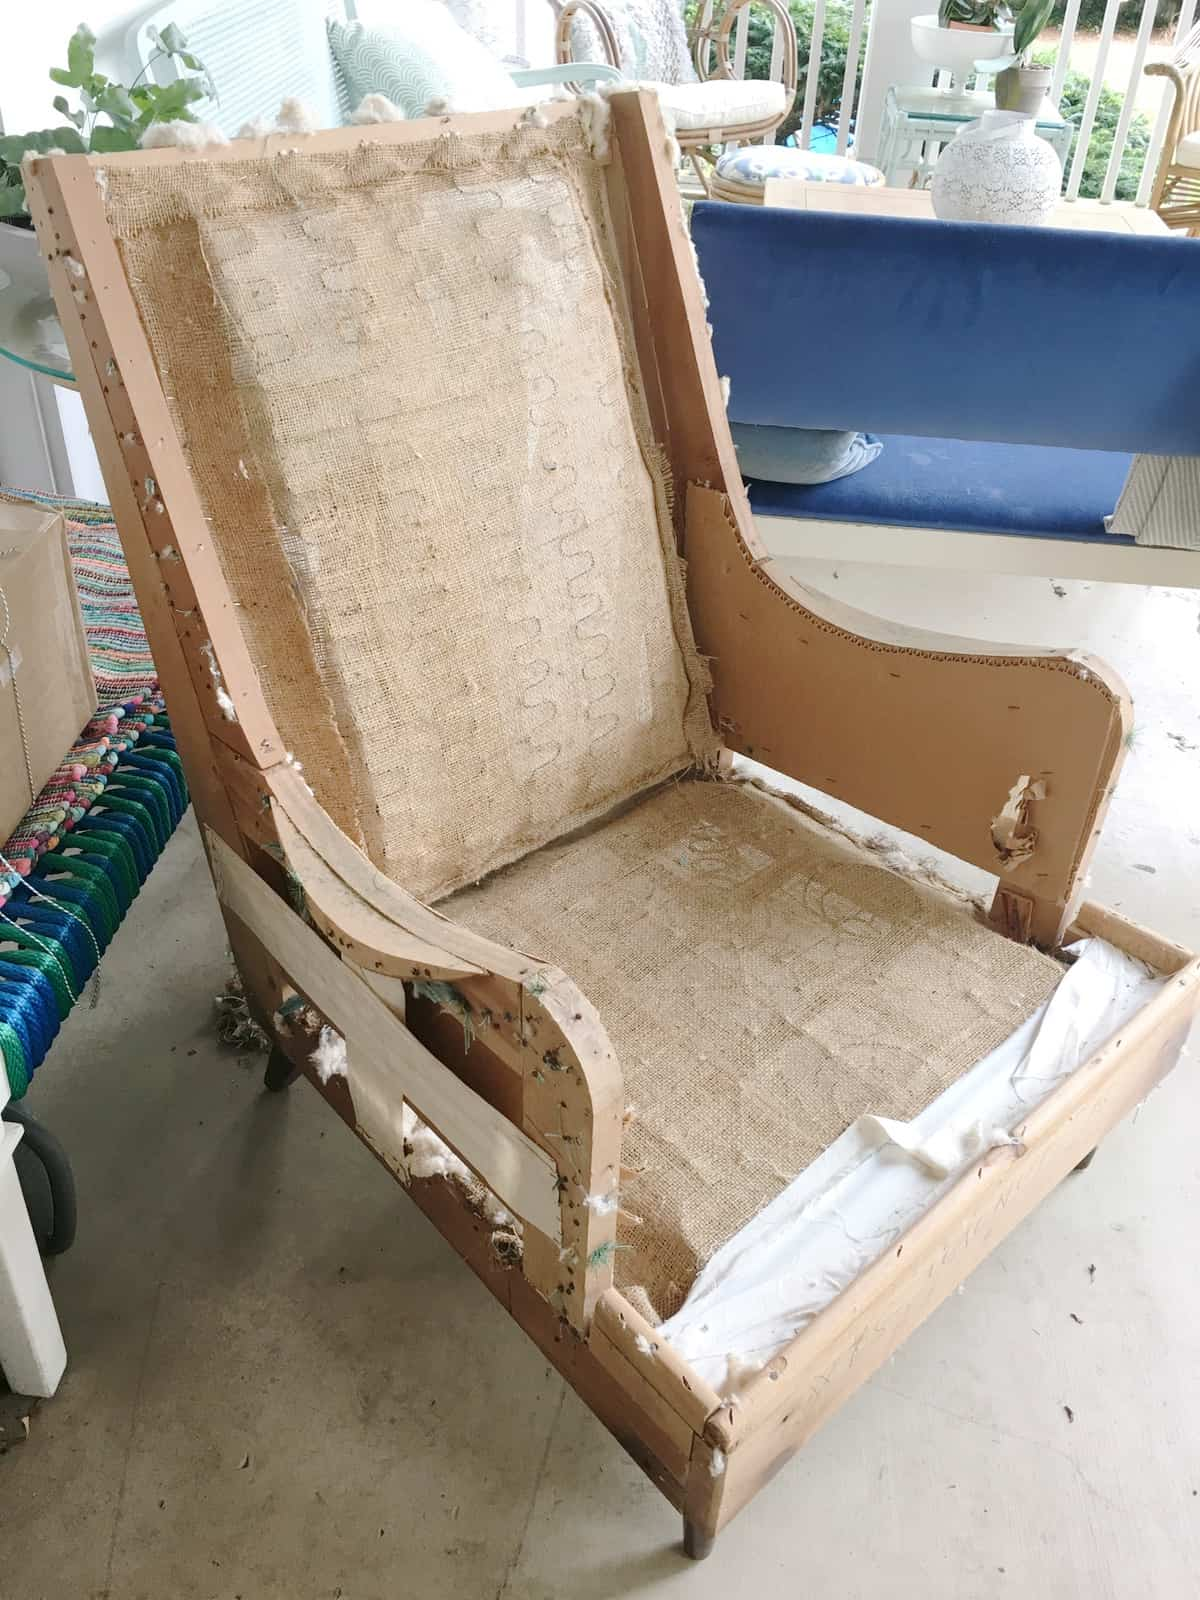 Preparing an old craigslist chair to be reupholstered.